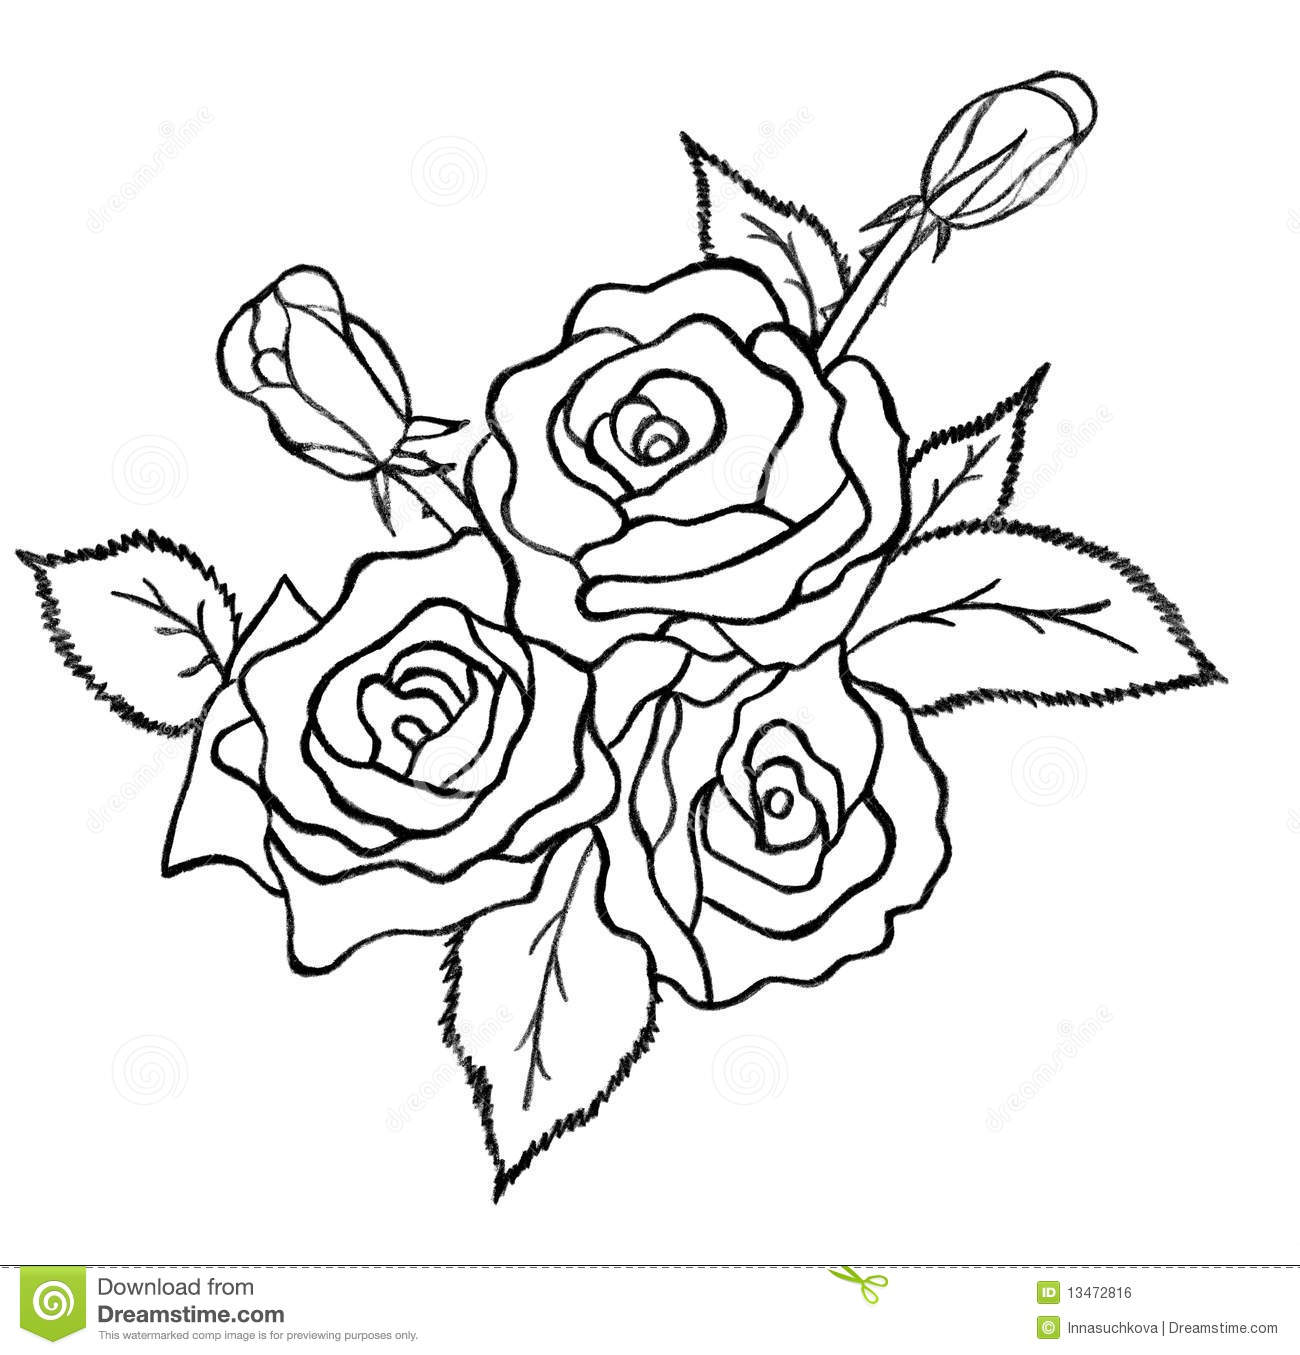 Easy Drawing Of Bunch Of Flowers Flowers Bunch Drawings In Pencil